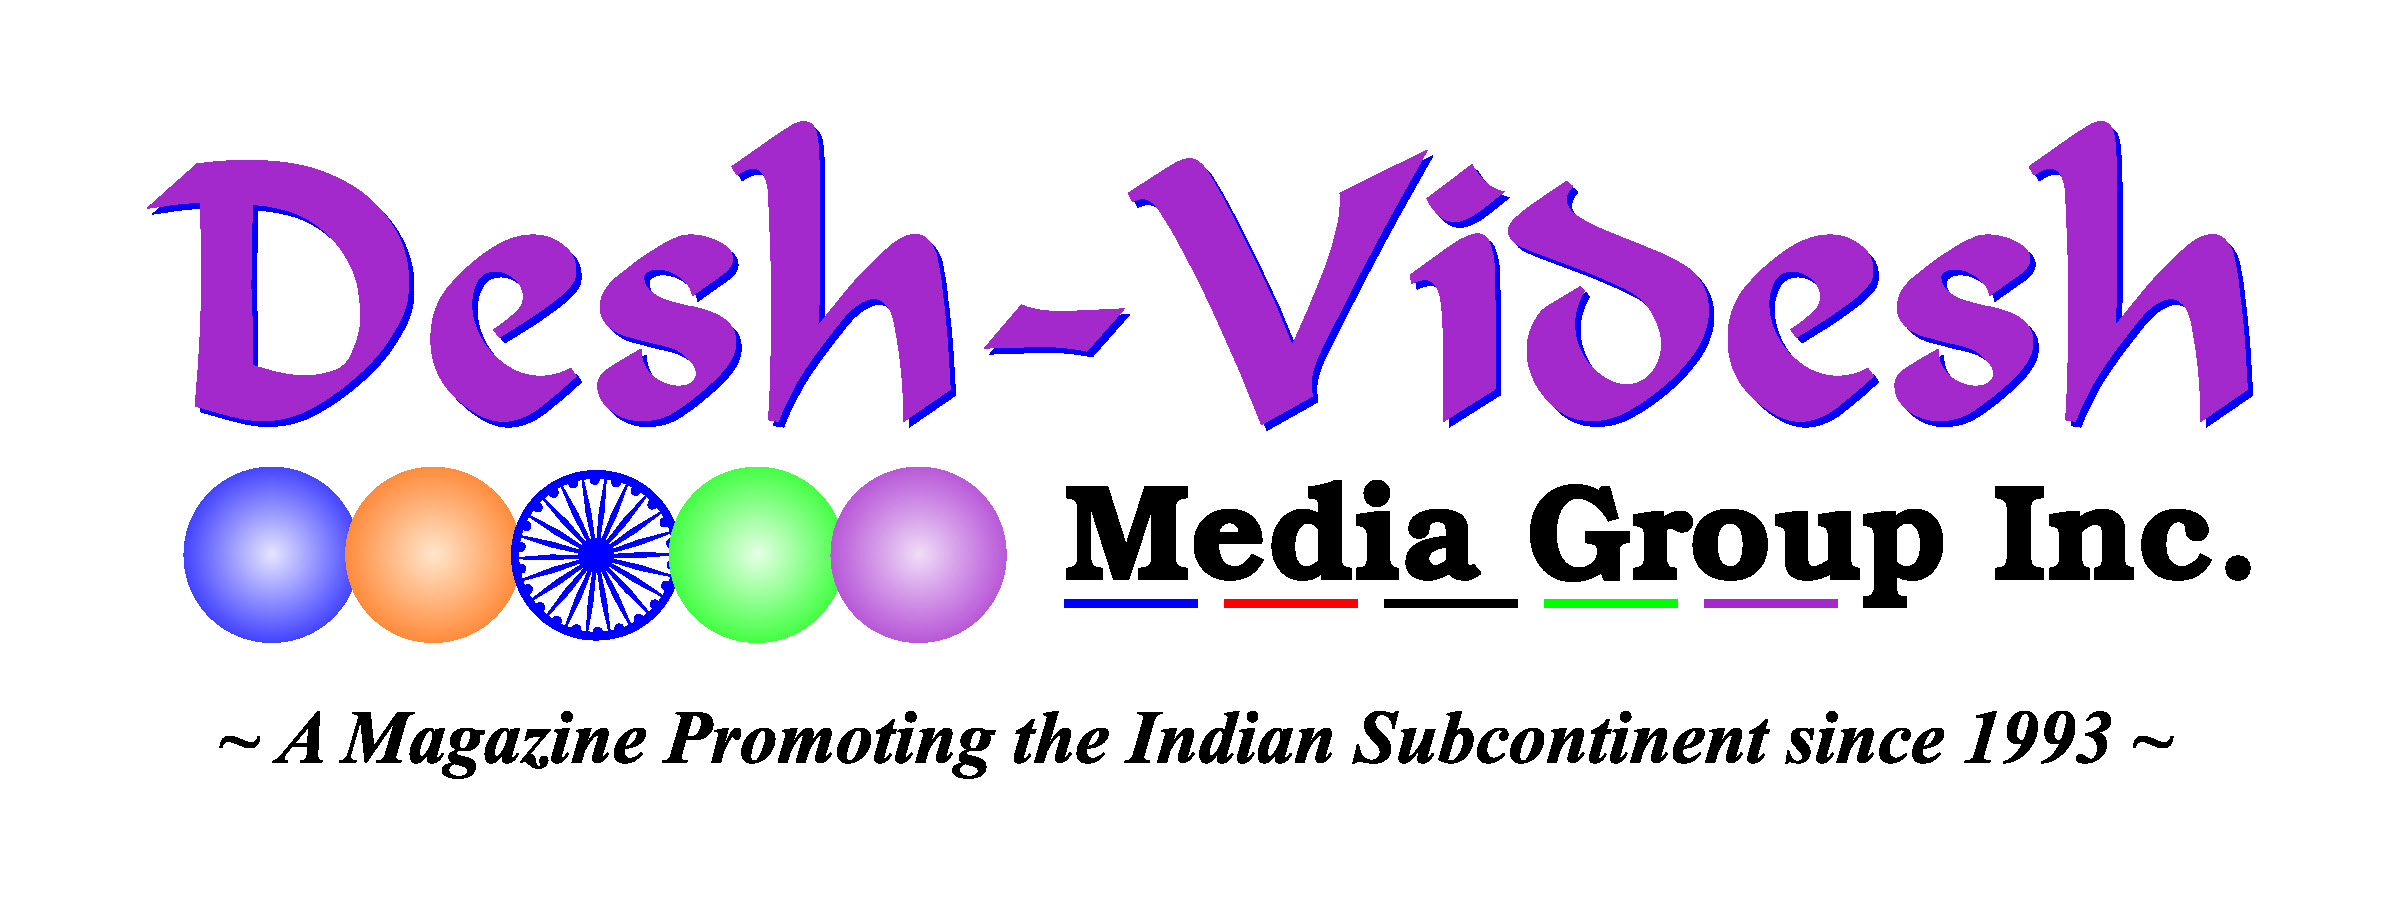 DESH VIDESH MEDIA GROUP LOGO